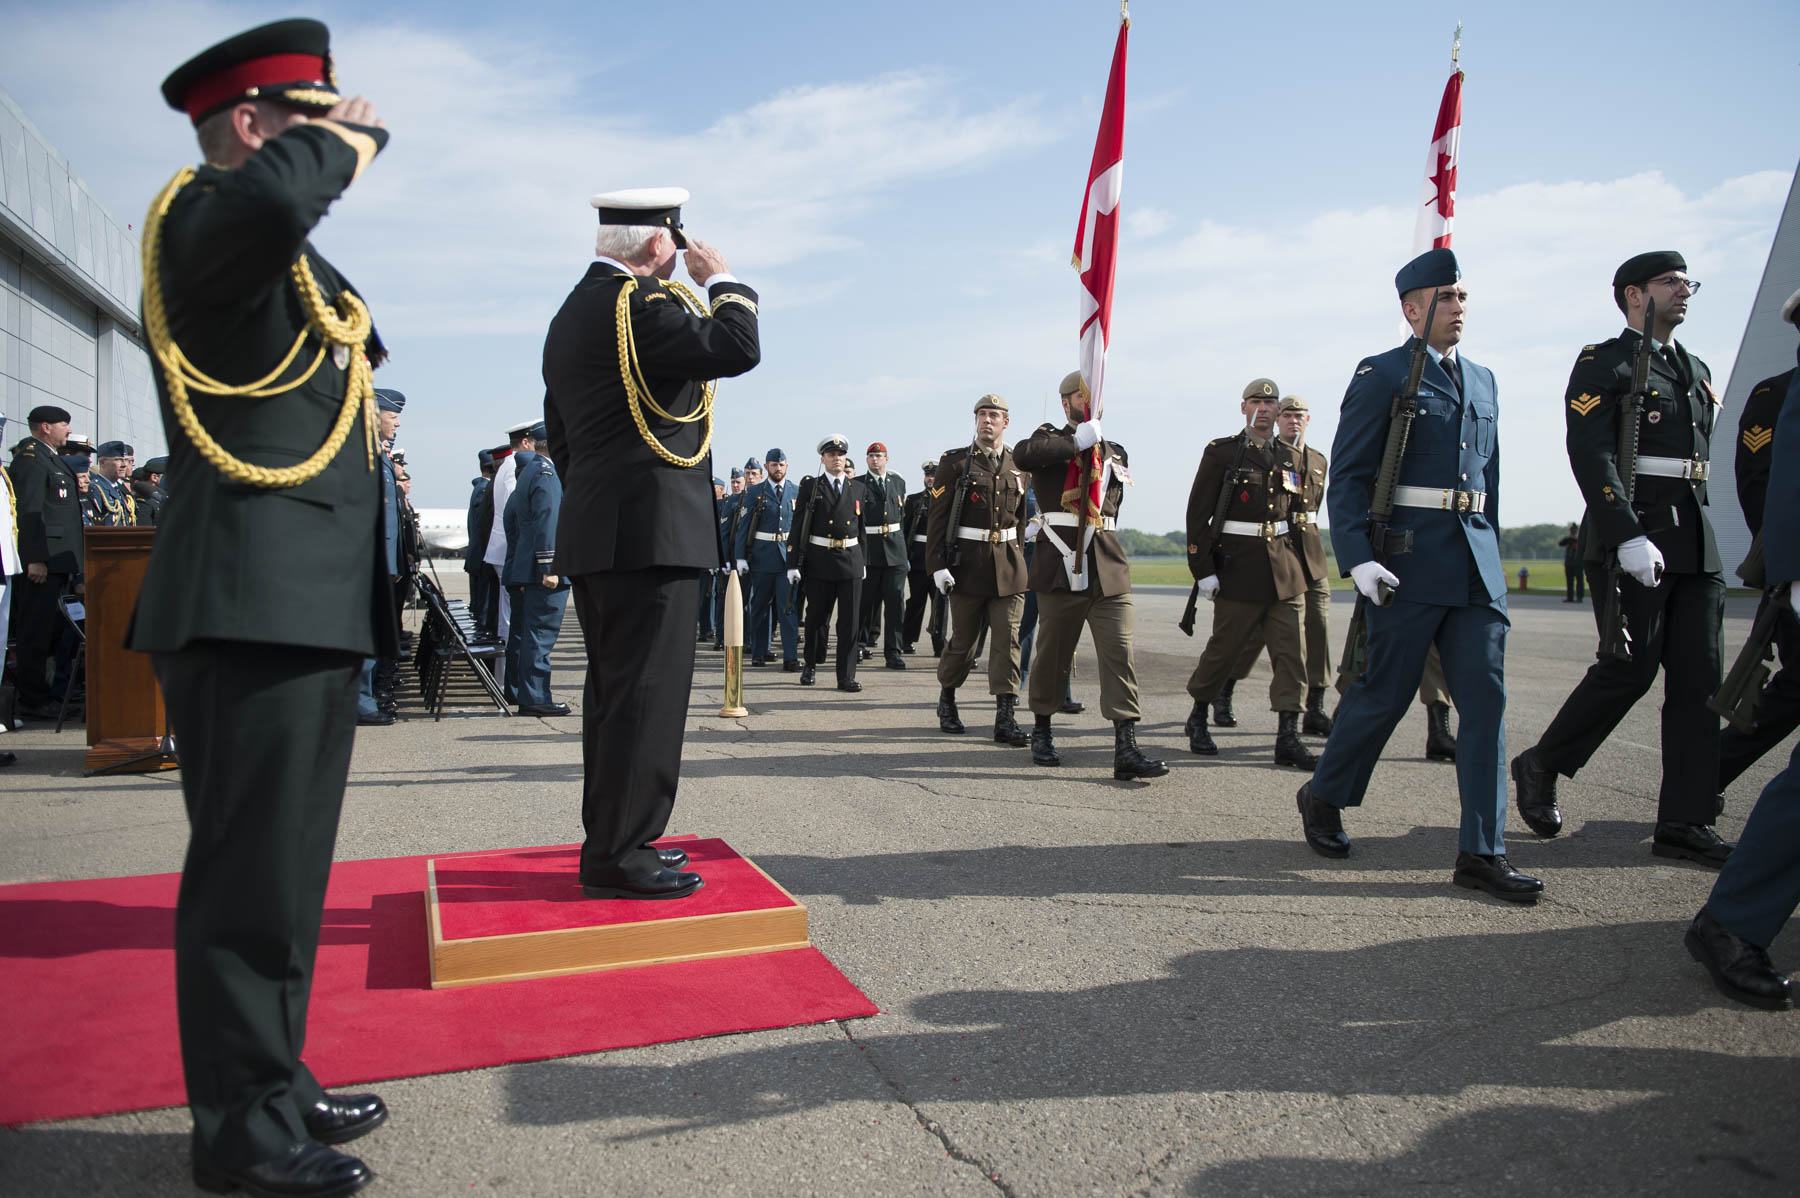 The Governor General and the Chief of Defence Staff saluted members of the Honour Guard as they marched past the dias.